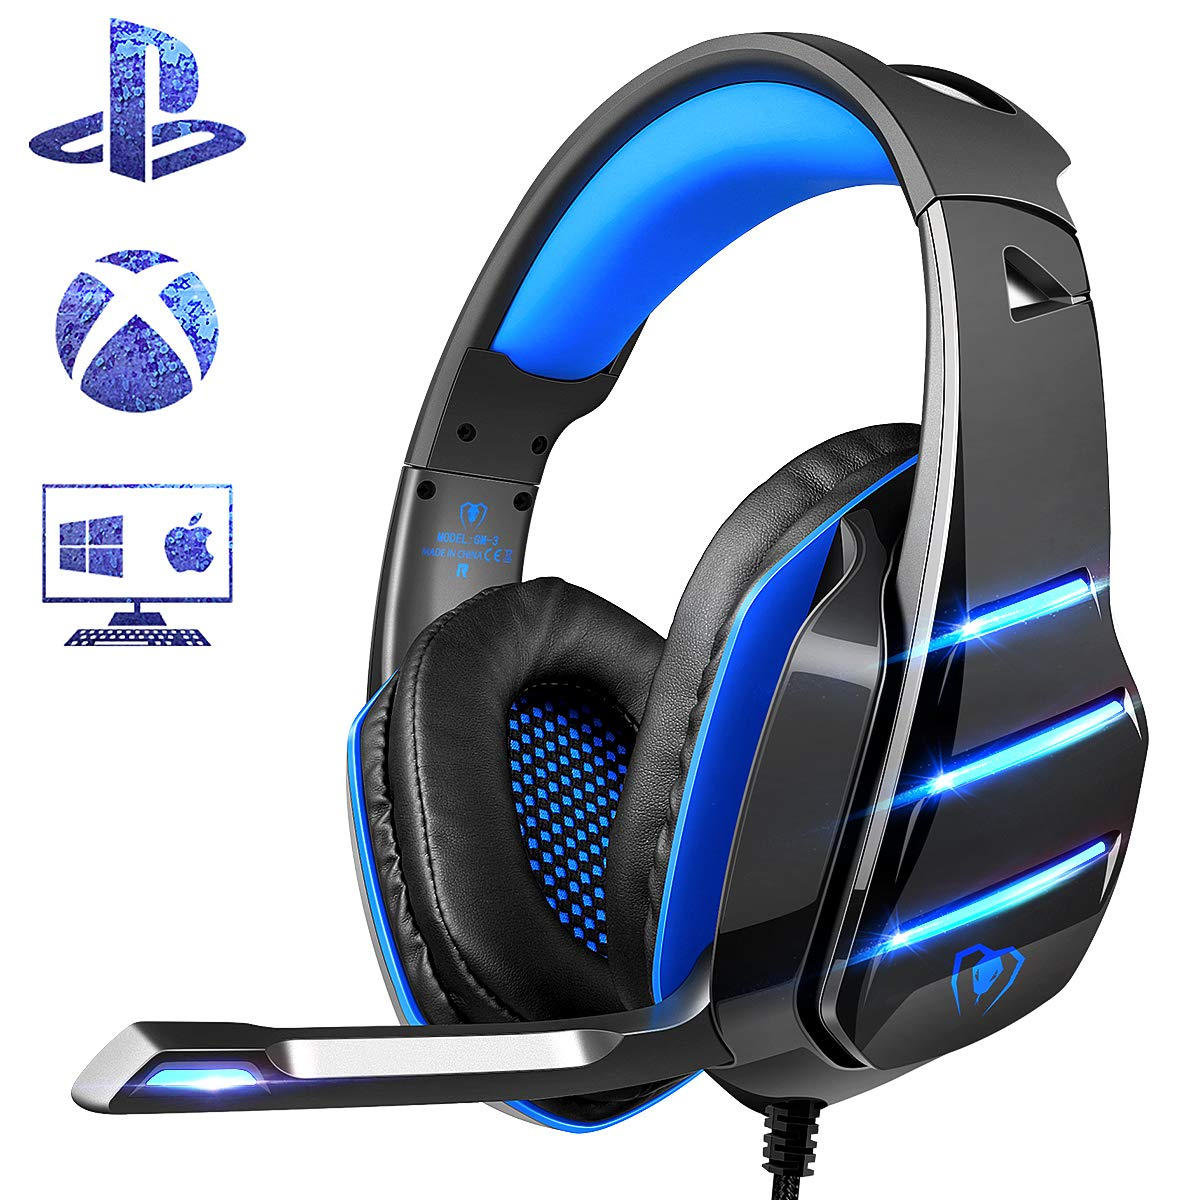 PS4 Gaming Headset with Mic, Beexcellent Newest Deep Bass Stereo Sound Over Ear Headphone with Noise Isolation LED Light for PC Laptop Tablet Mac (Blue)